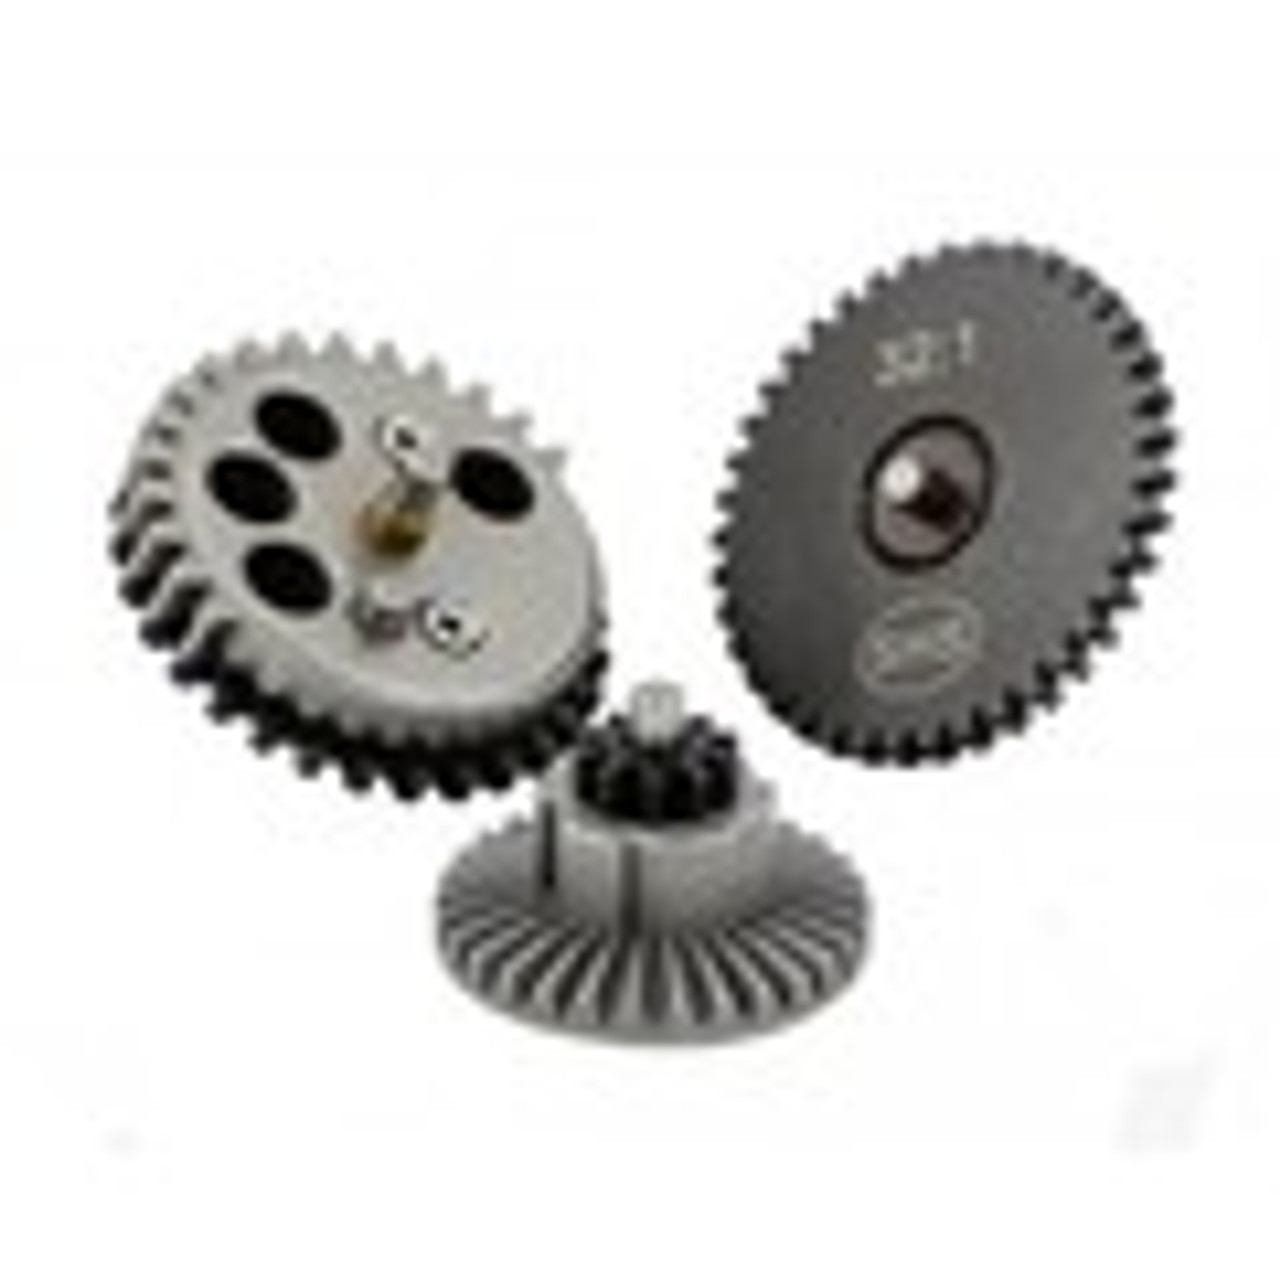 Gears and Gear Sets